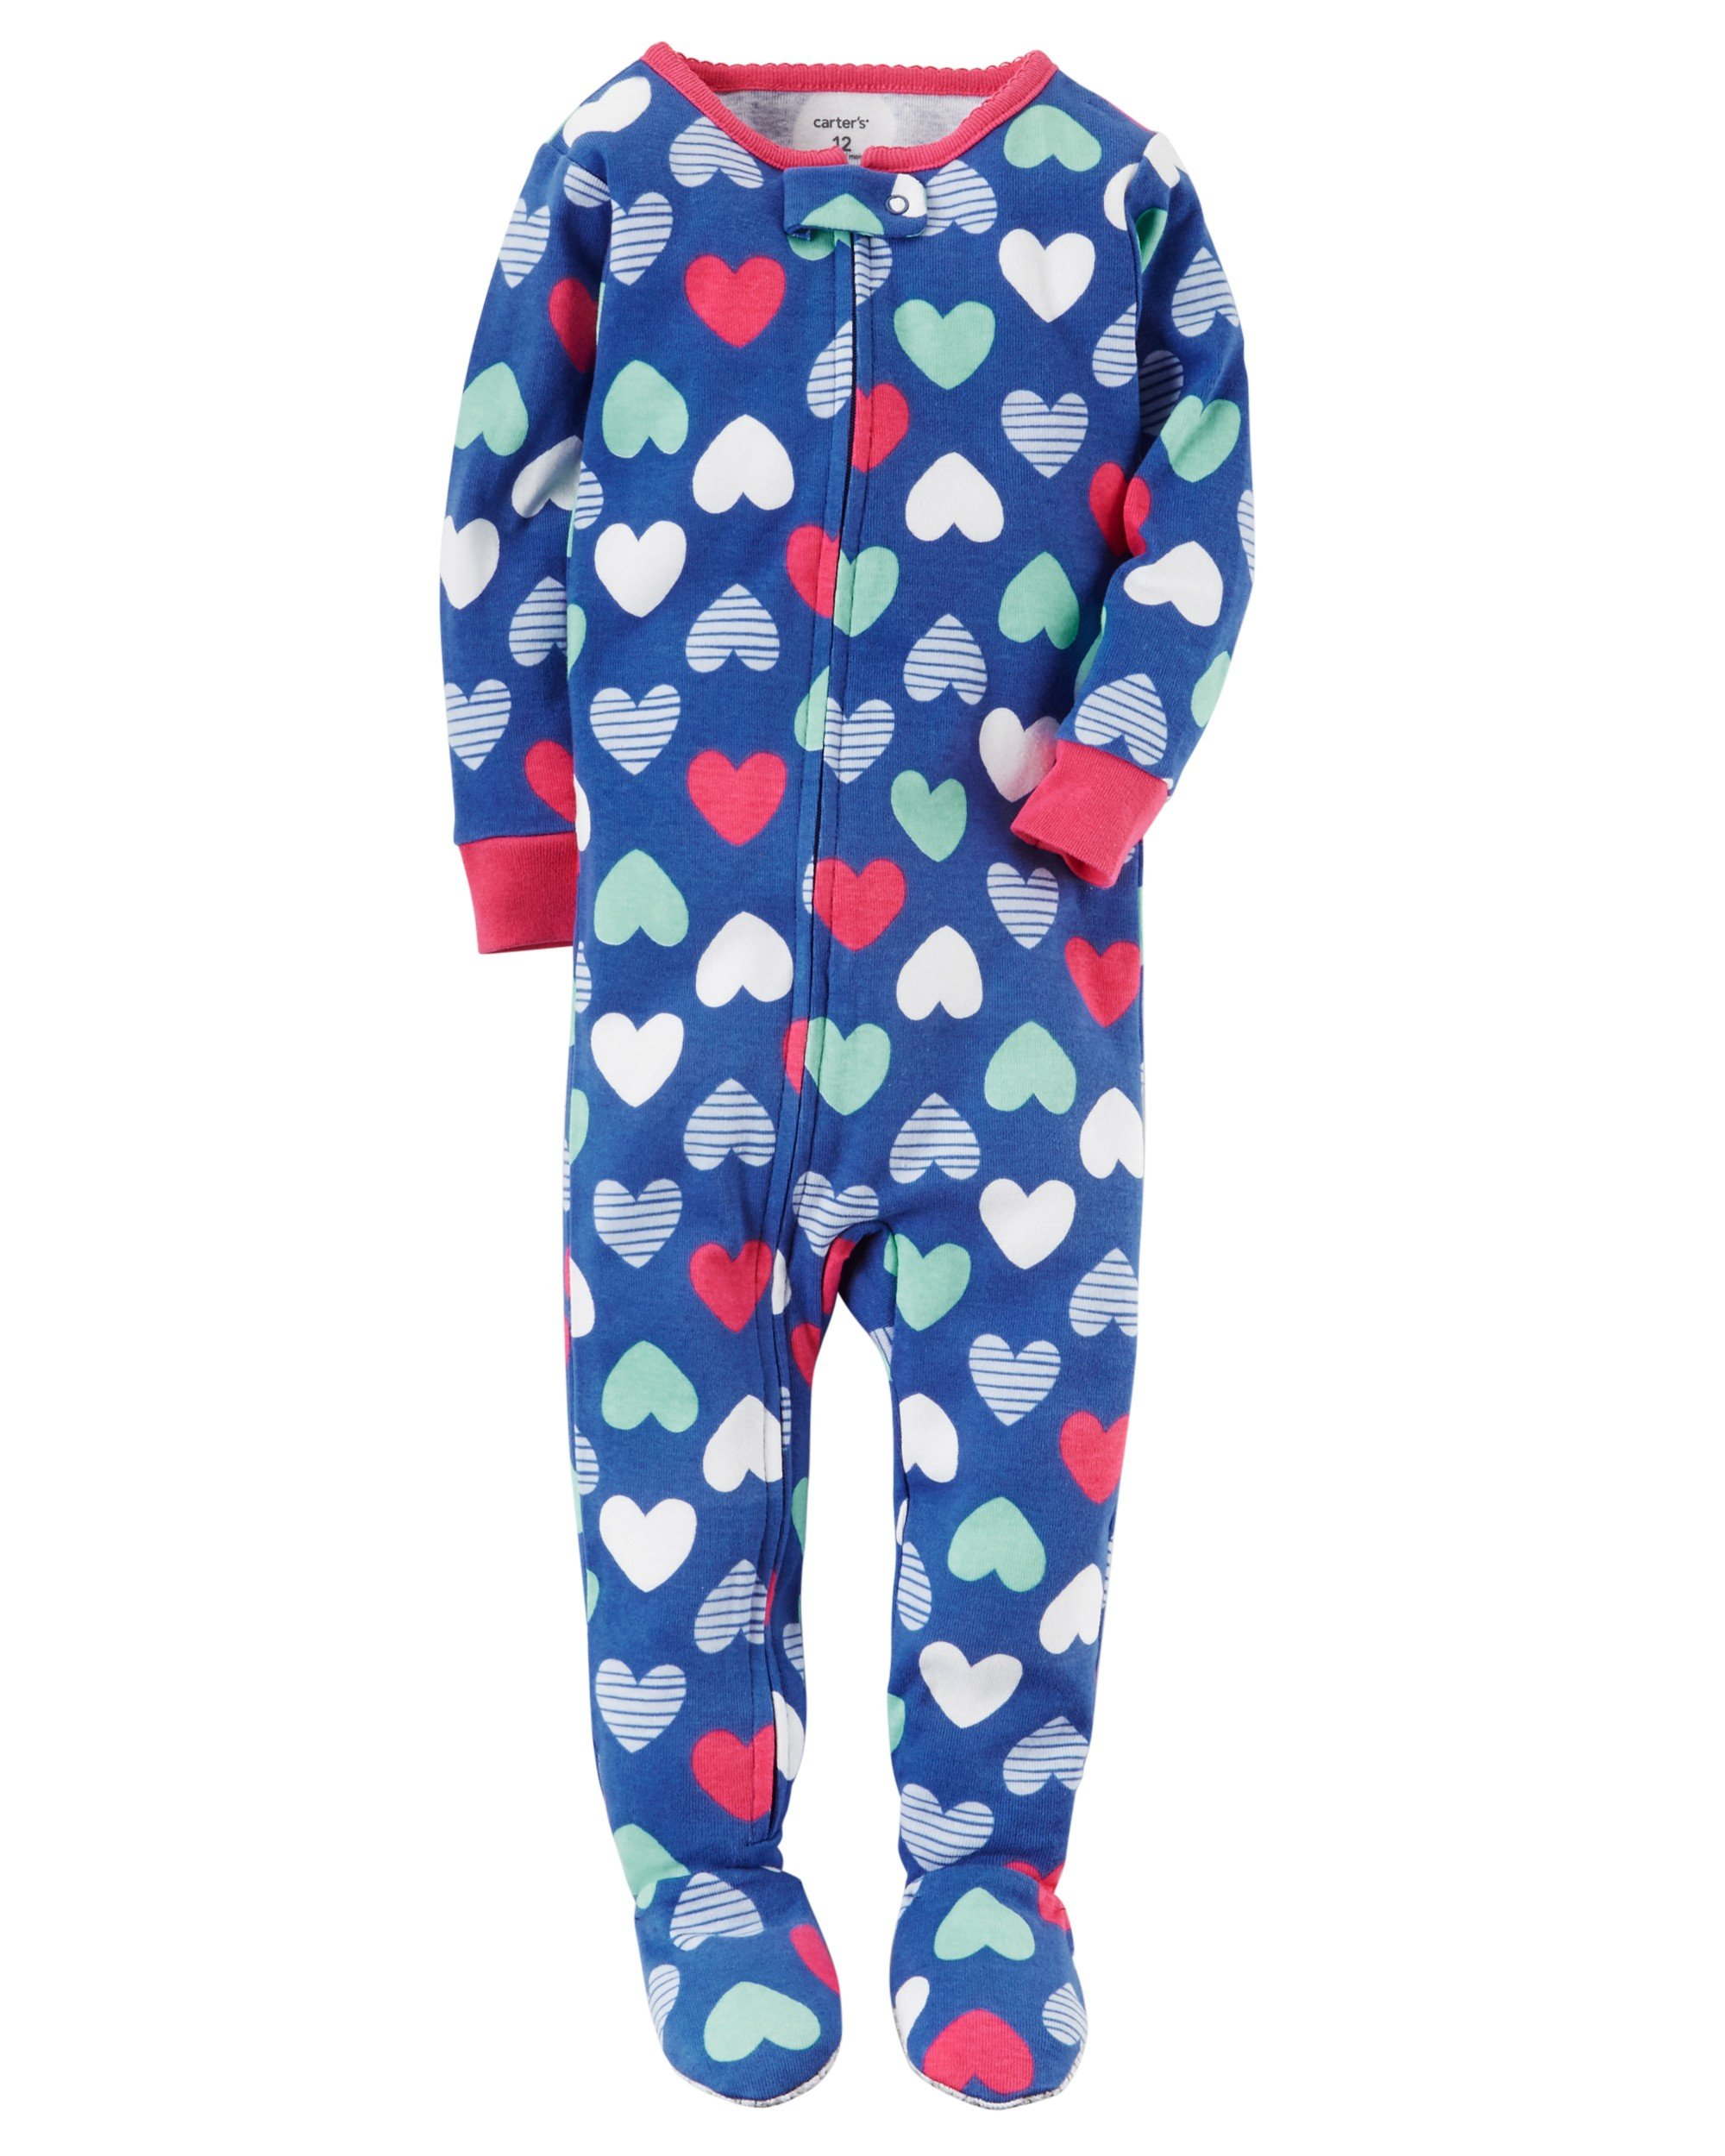 frogs of one items sleepers girl img long products newborn baby size sleeve sleeper lot piece